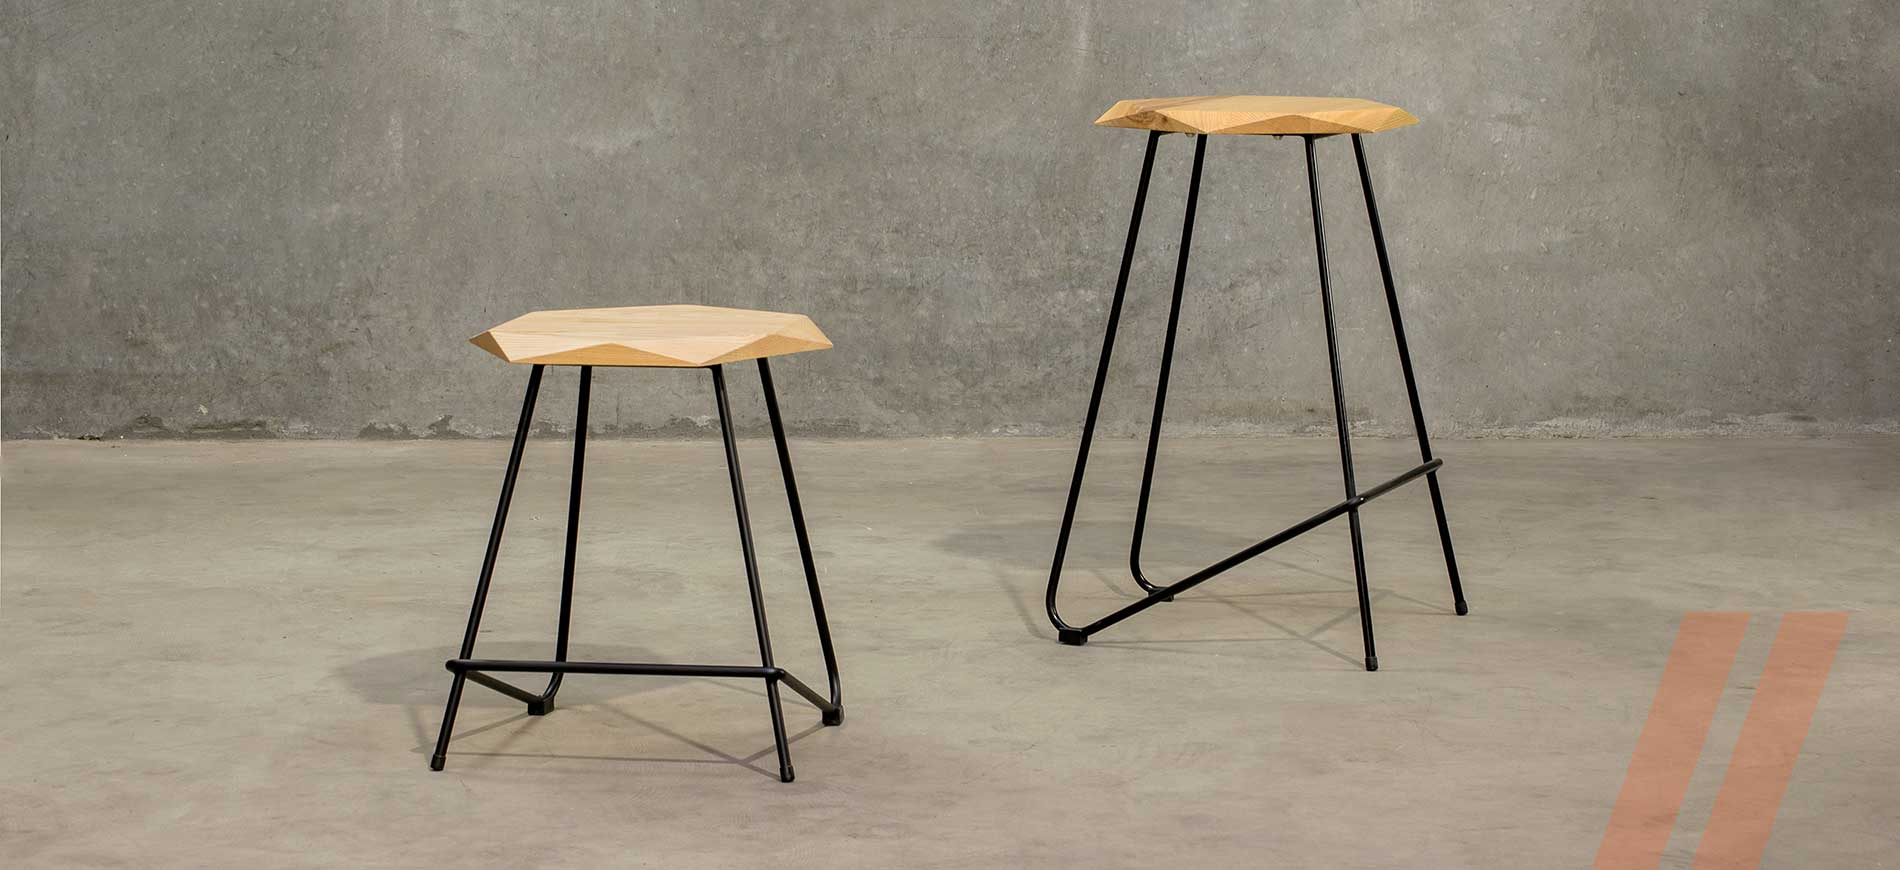 Bar Stools Hobart Tables And Chairs For Restaurants Cafes Hotels Concept